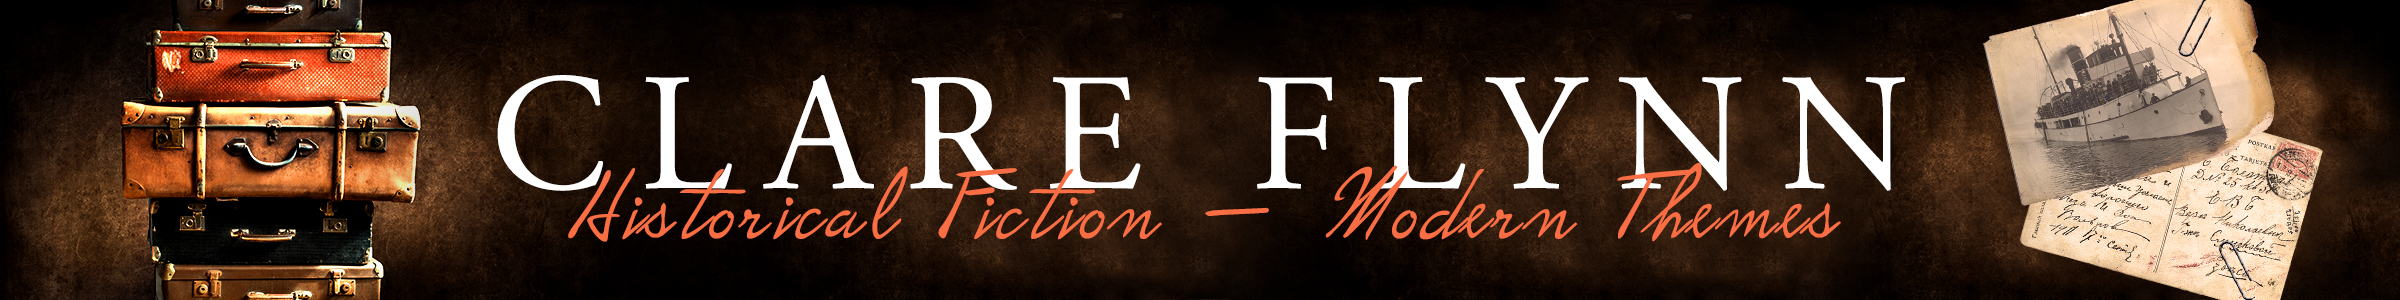 Website Header of Clare Flynn-Author of Historical Novels